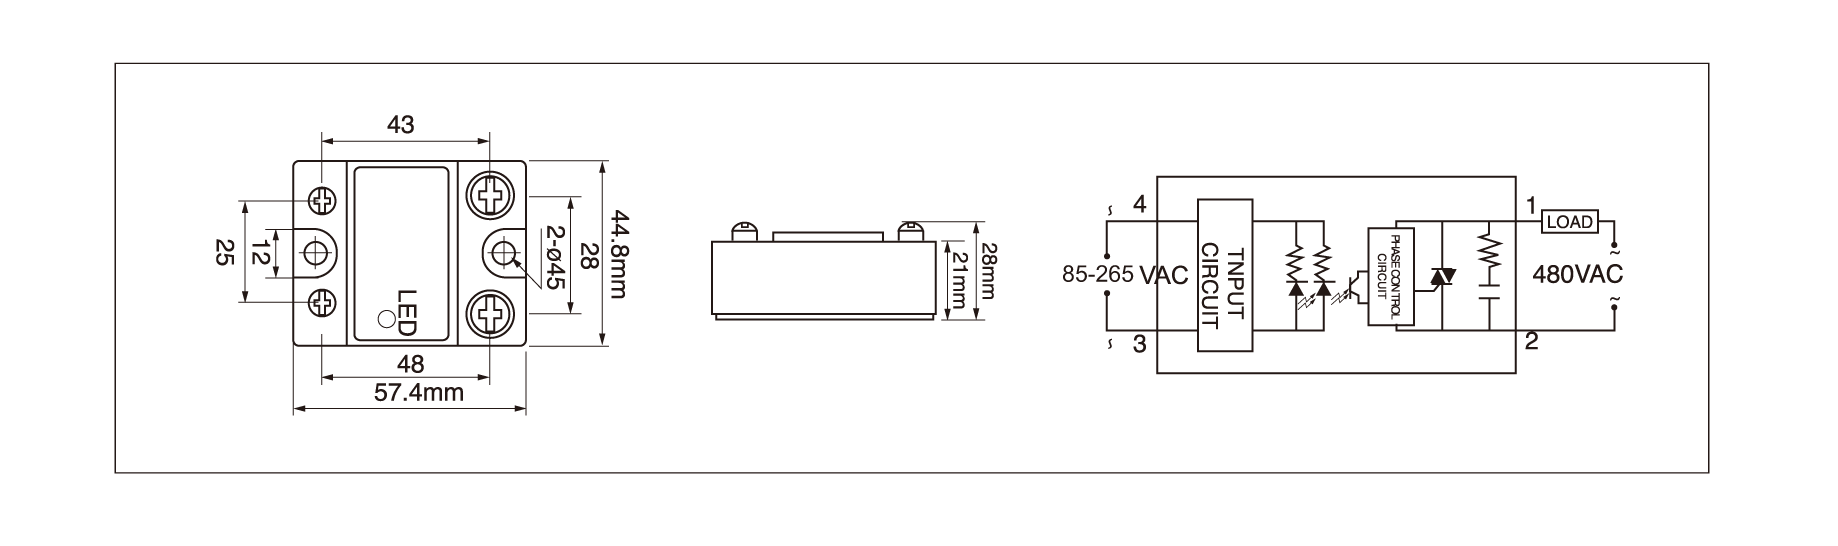 MGR-1A48 Huimu diagram